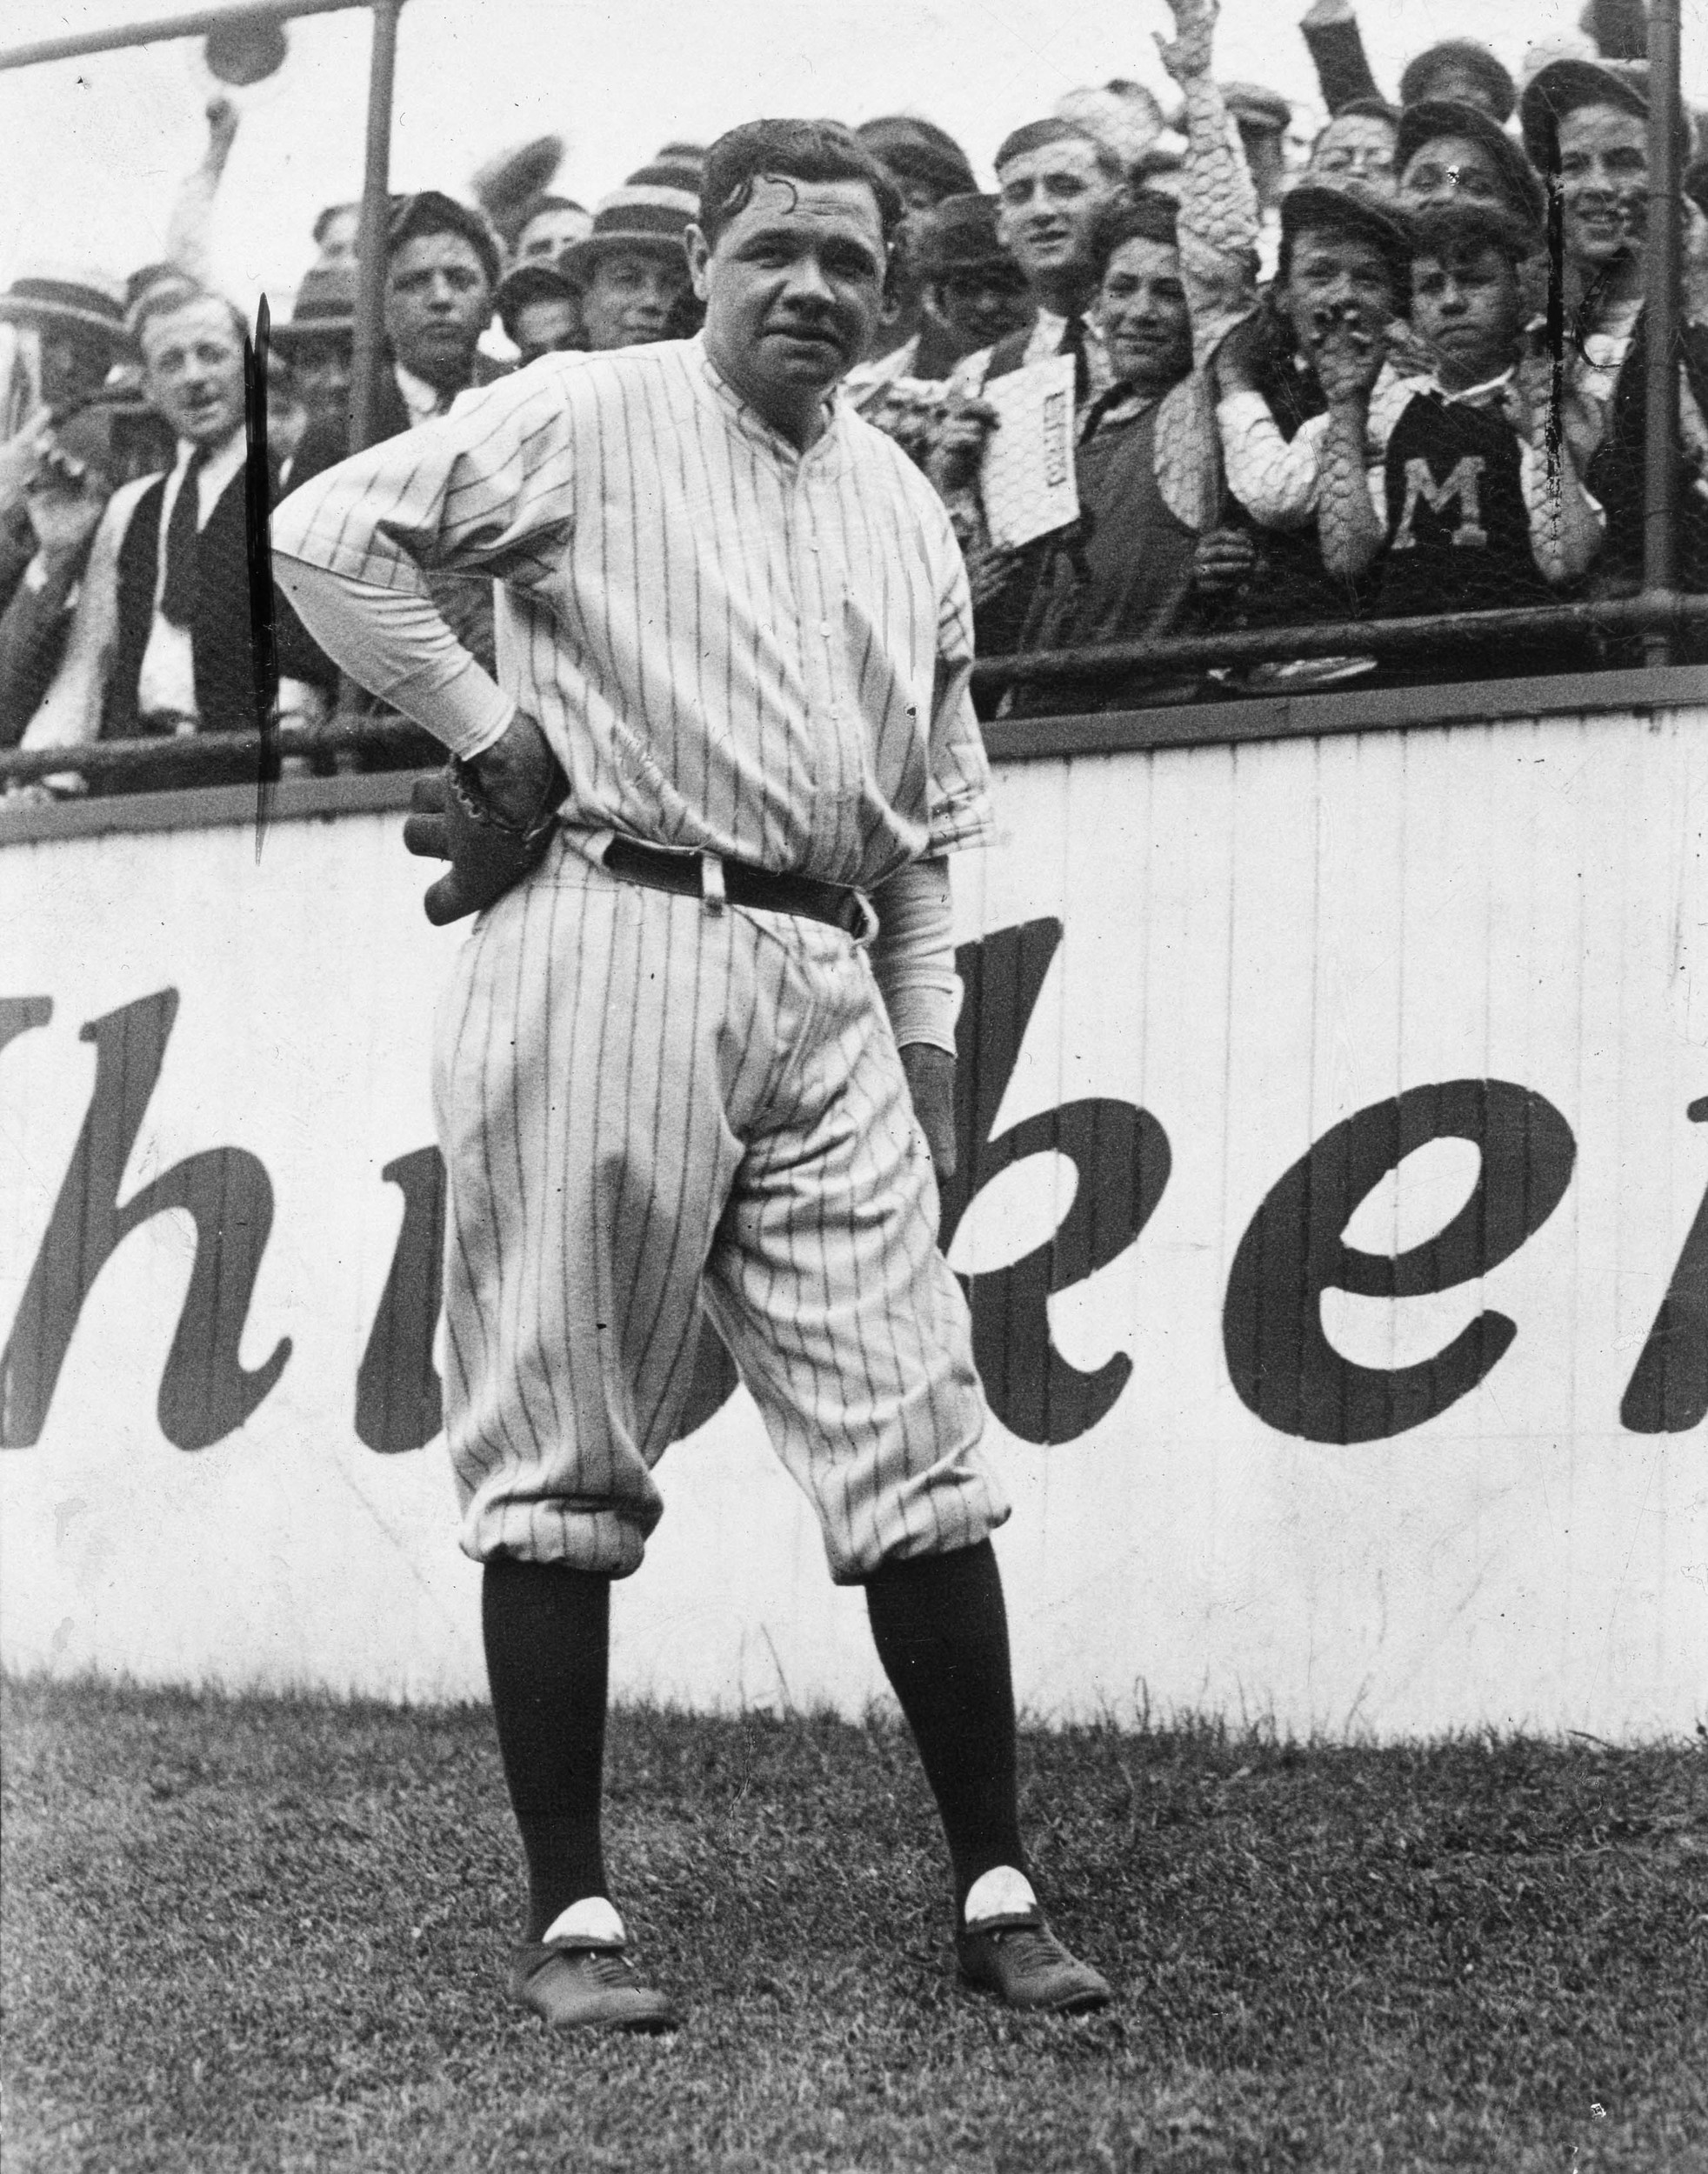 Why was babe ruth called the great bambino-1392